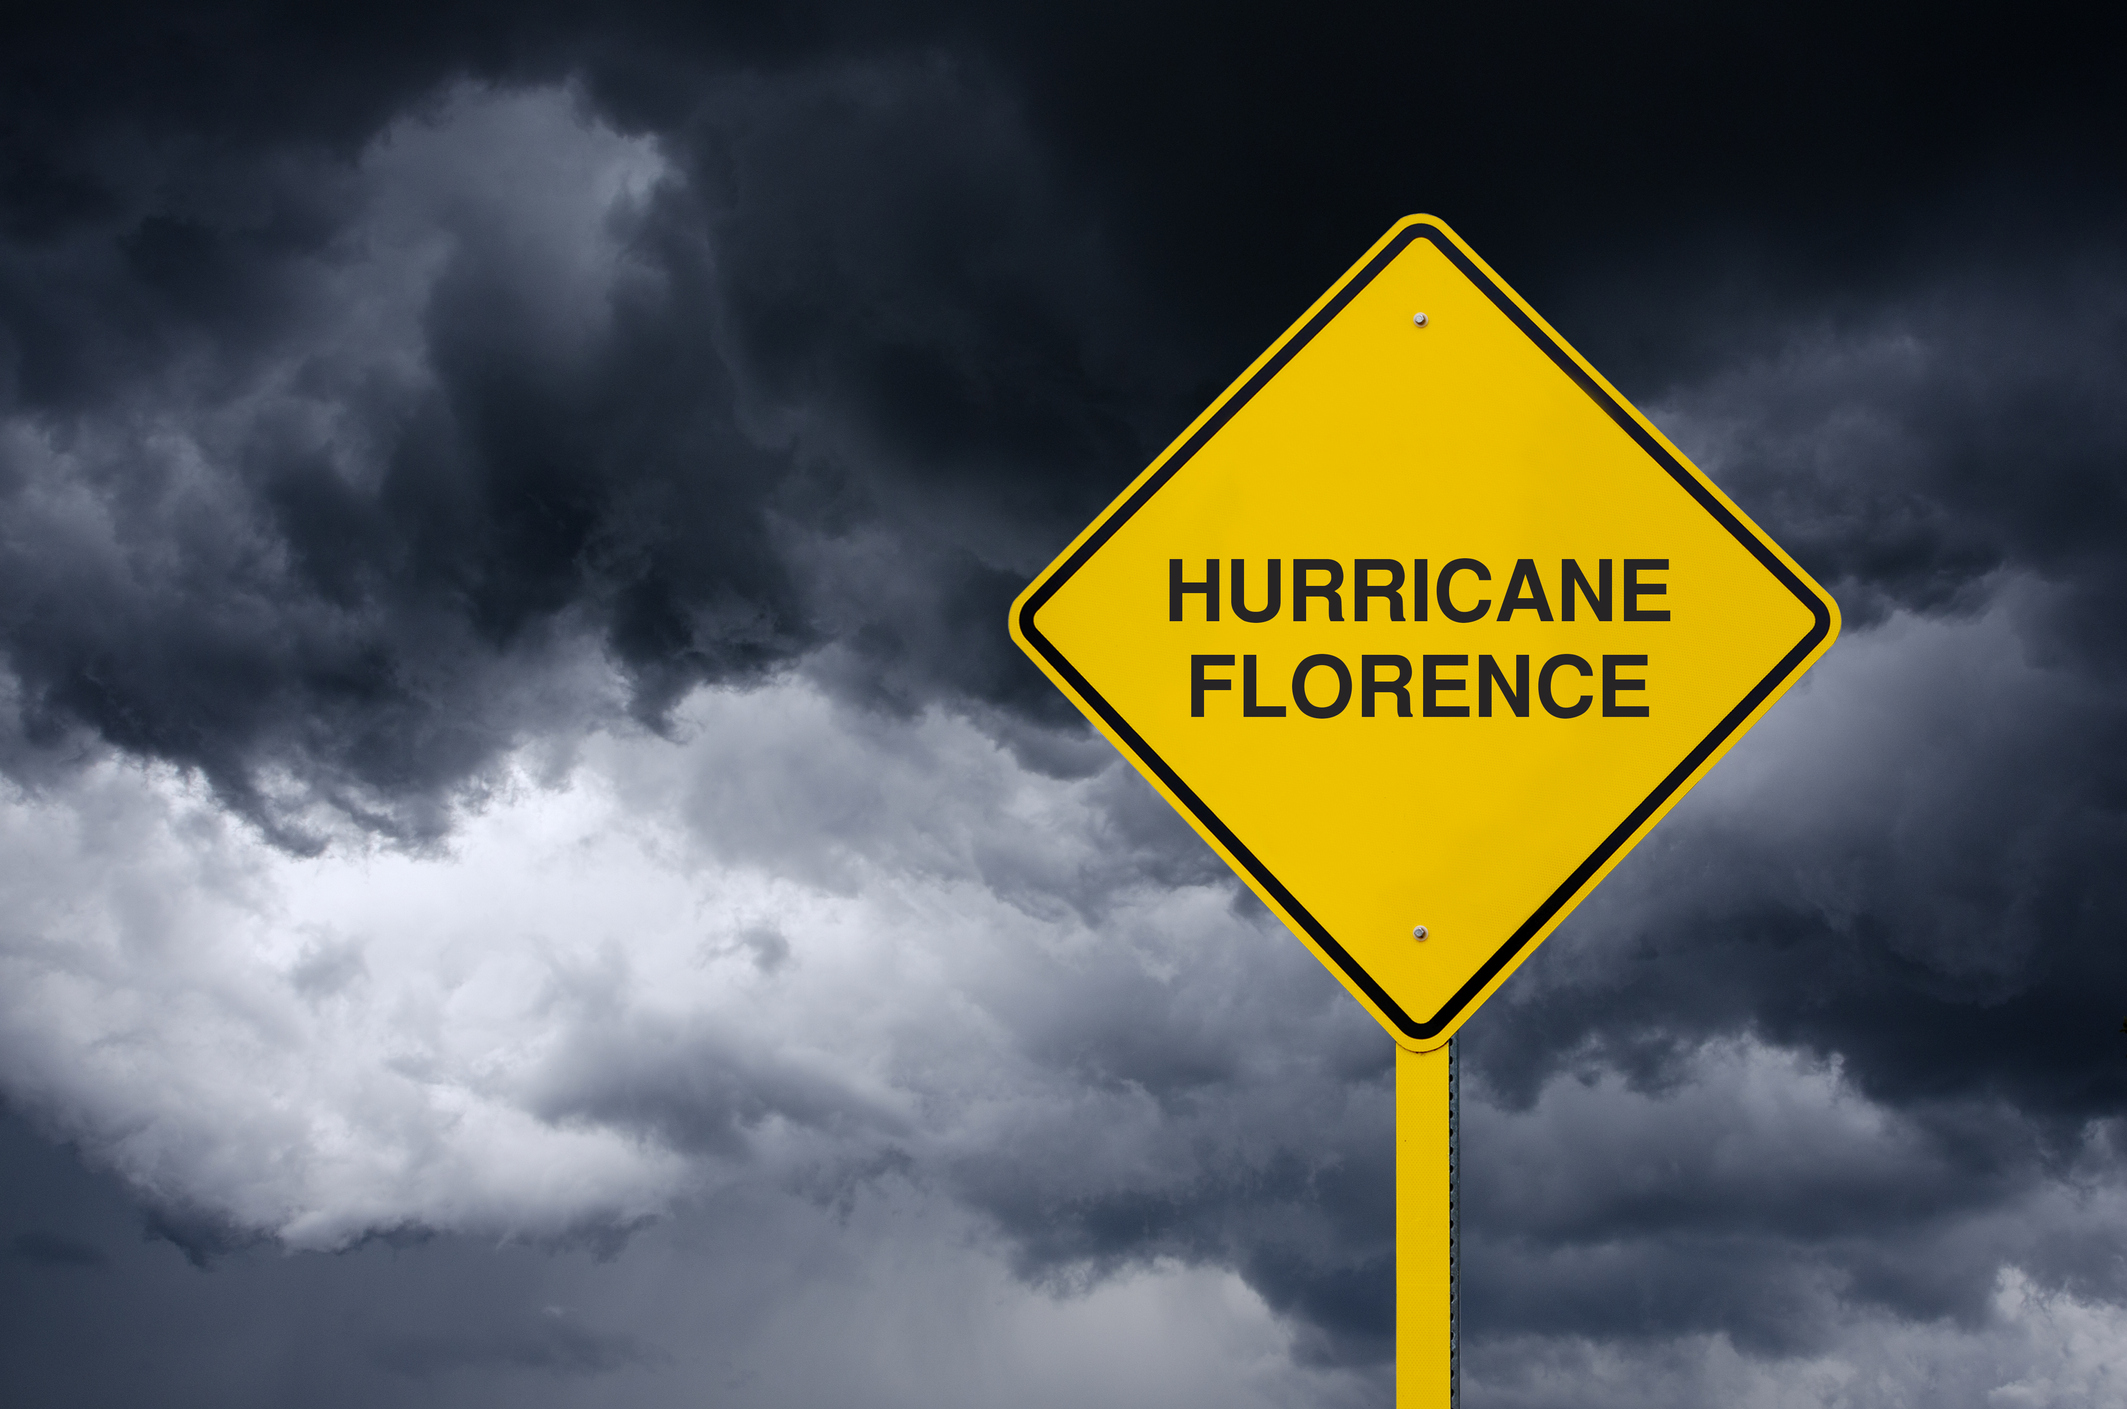 Road sign of hurricane florence in front of storm clouds 1036985136 2131x1412